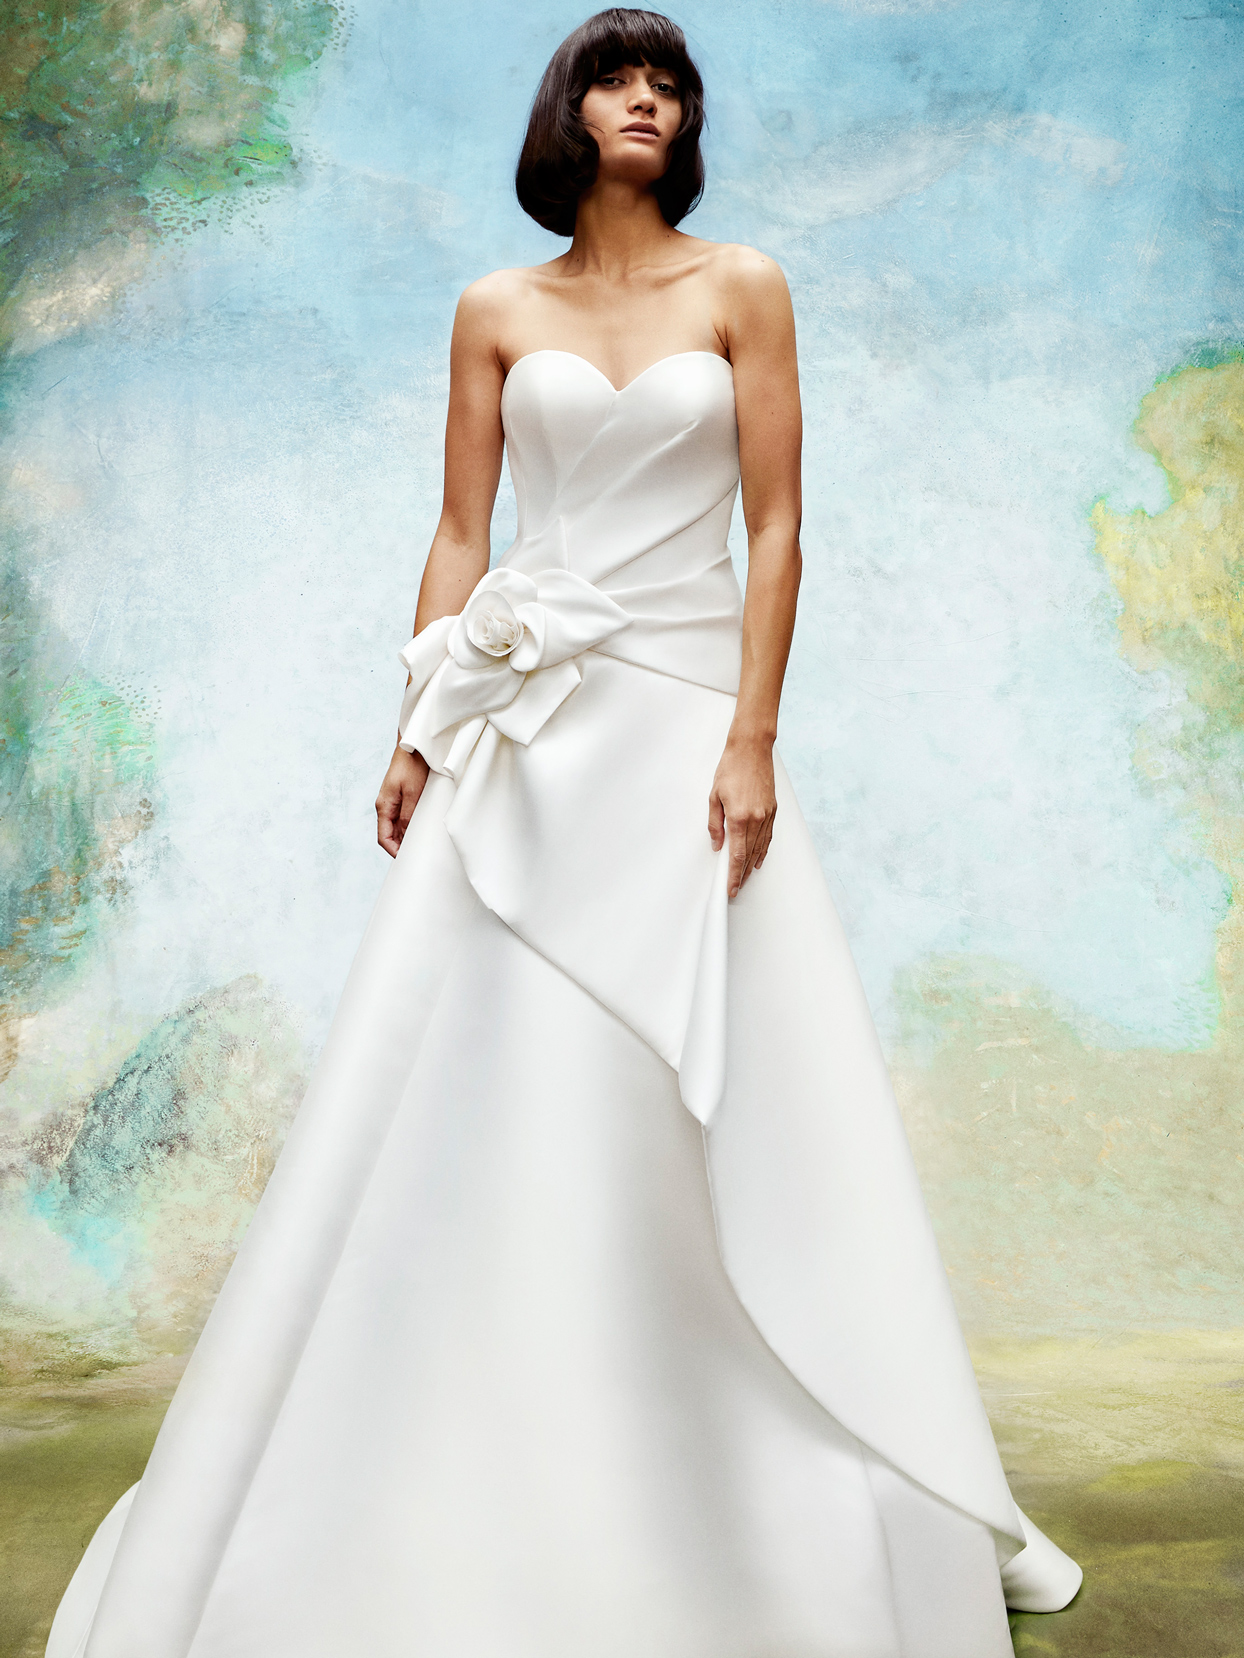 viktor and rolf strapless wedding dress with 3D floral detail fall 2020